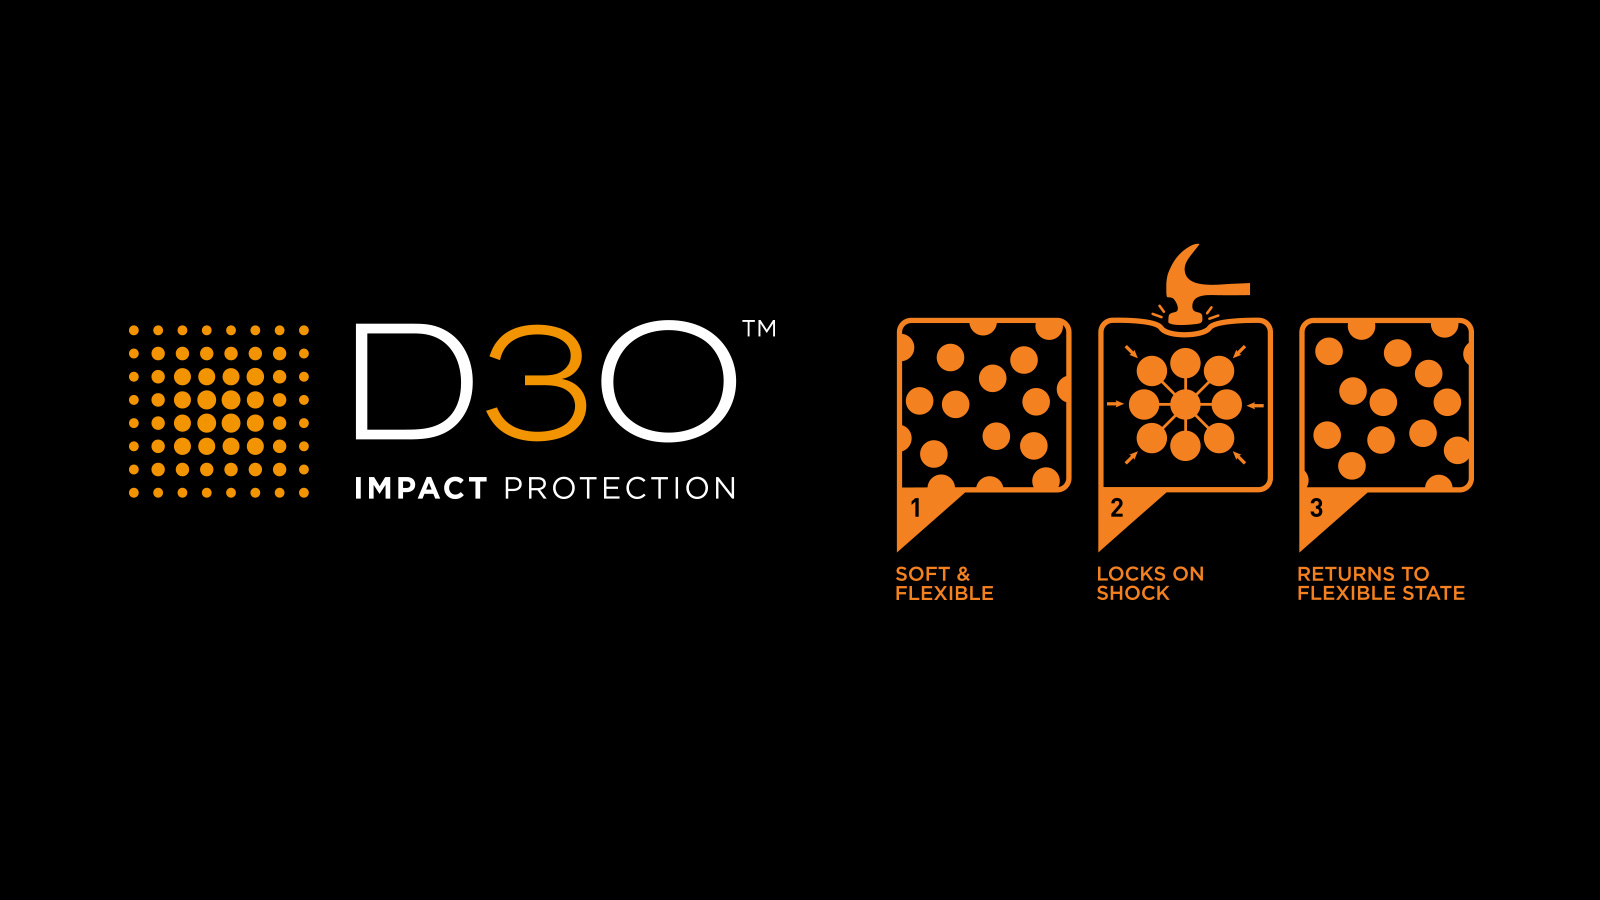 D3O Body Protection Tech